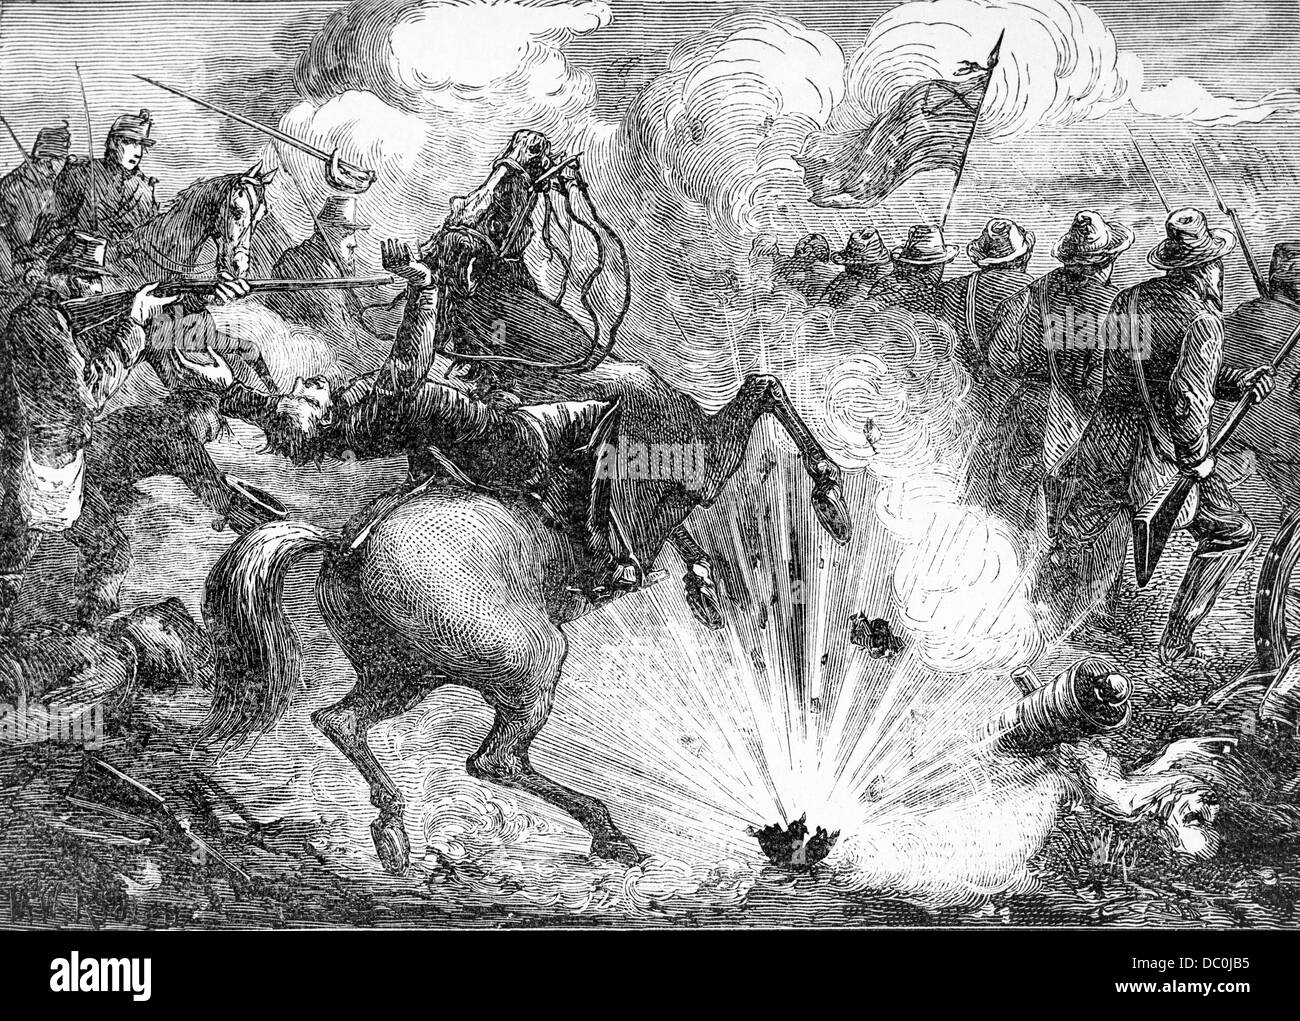 1800s 1860s APRIL 1862 BATTLE OF SHILOH PITTSBURG LANDING CONFEDERATE TROOPS ADVANCING INTO EXPLODING CANNON FIRE - Stock Image